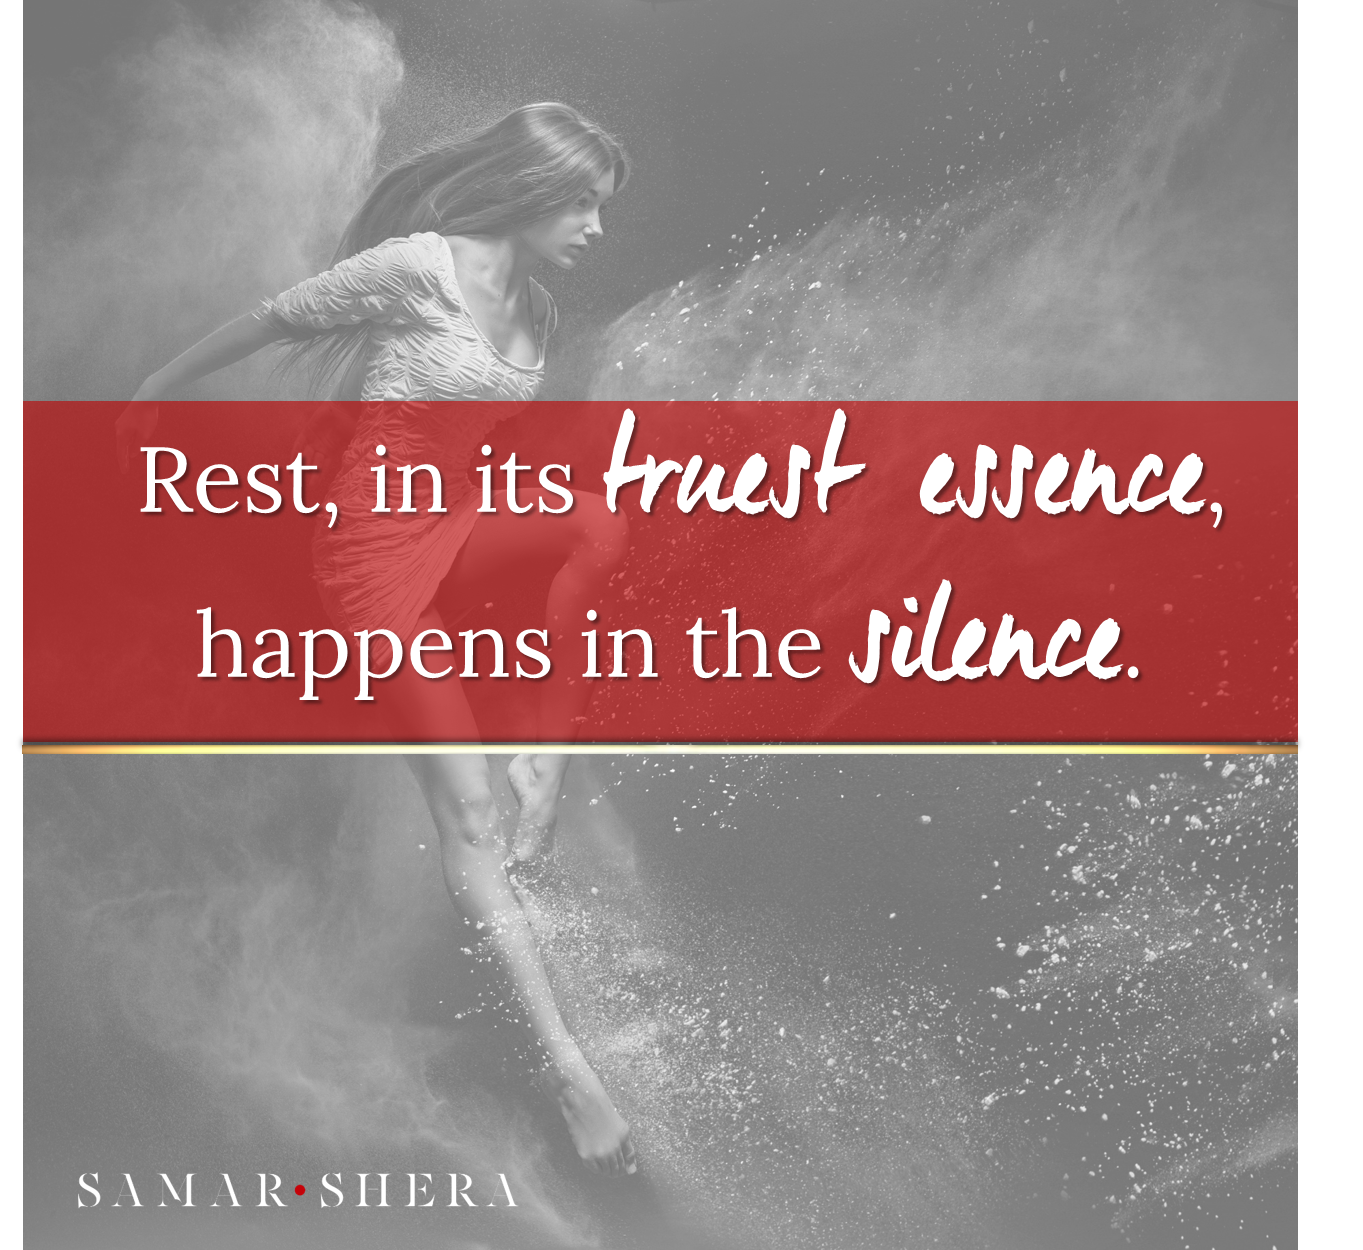 Rest, in its truest essence, happens in the silence.